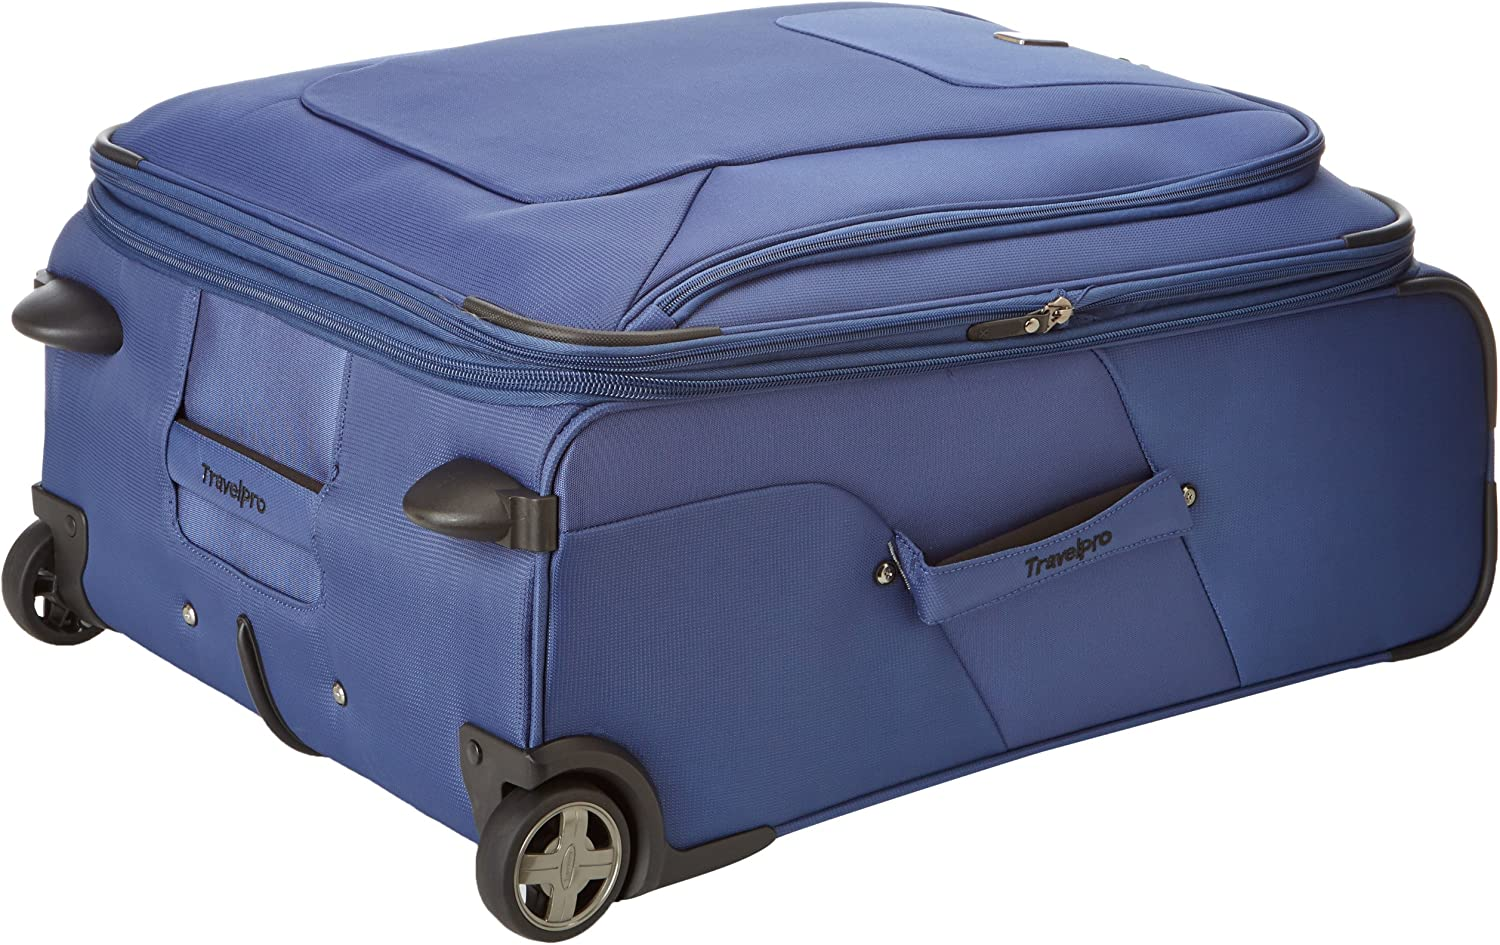 One Size Travelpro Luggage Maxlite3 25 Inch Expandable Rollaboard Blue